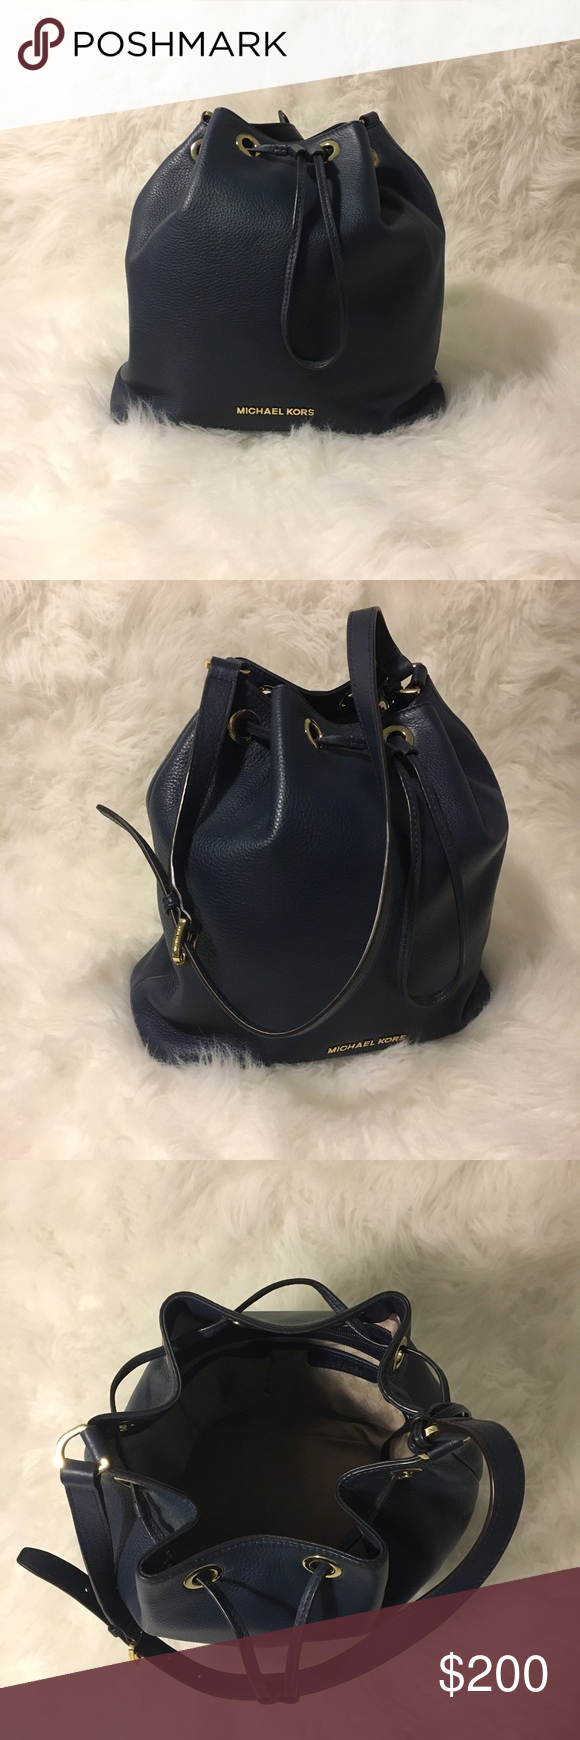 NWT Michael Kors Jules handbag Purchased last year and never used it. I styled it in one picture for one blog post and it went on my shelf. $200 or send me your best offer! 🎀 Michael Kors Bags